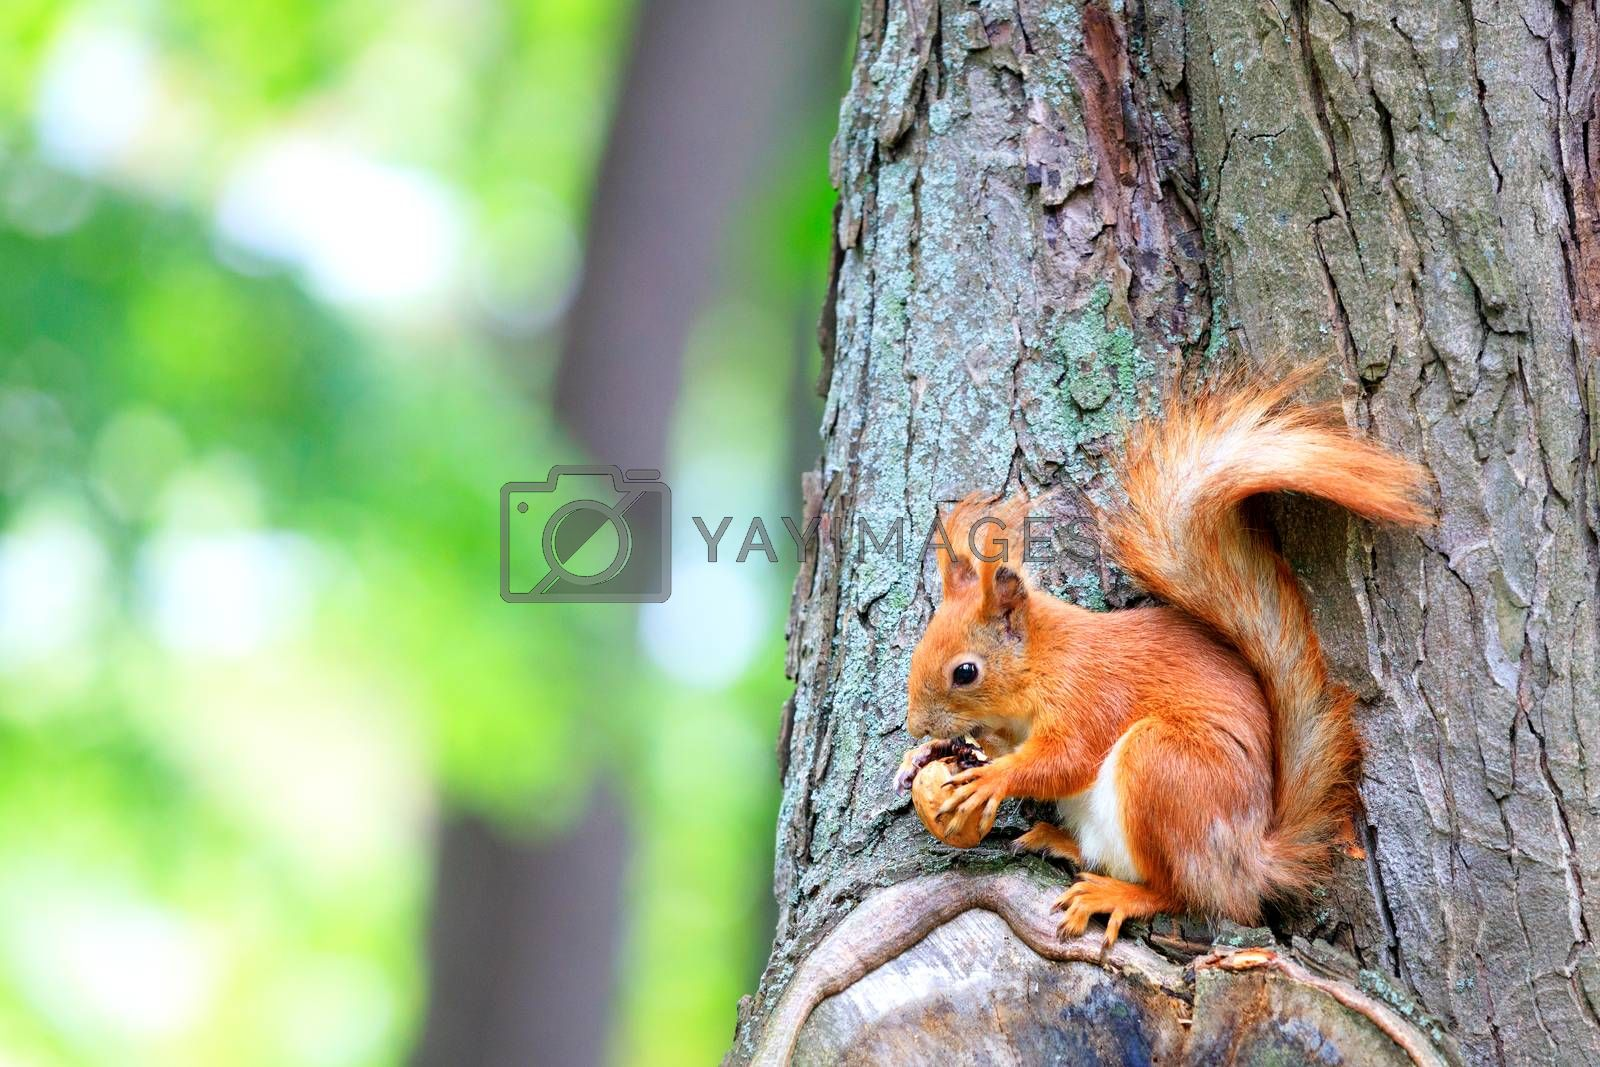 An orange fluffy squirrel sits on a tree and gnaws a nut found, copy space, close-up.